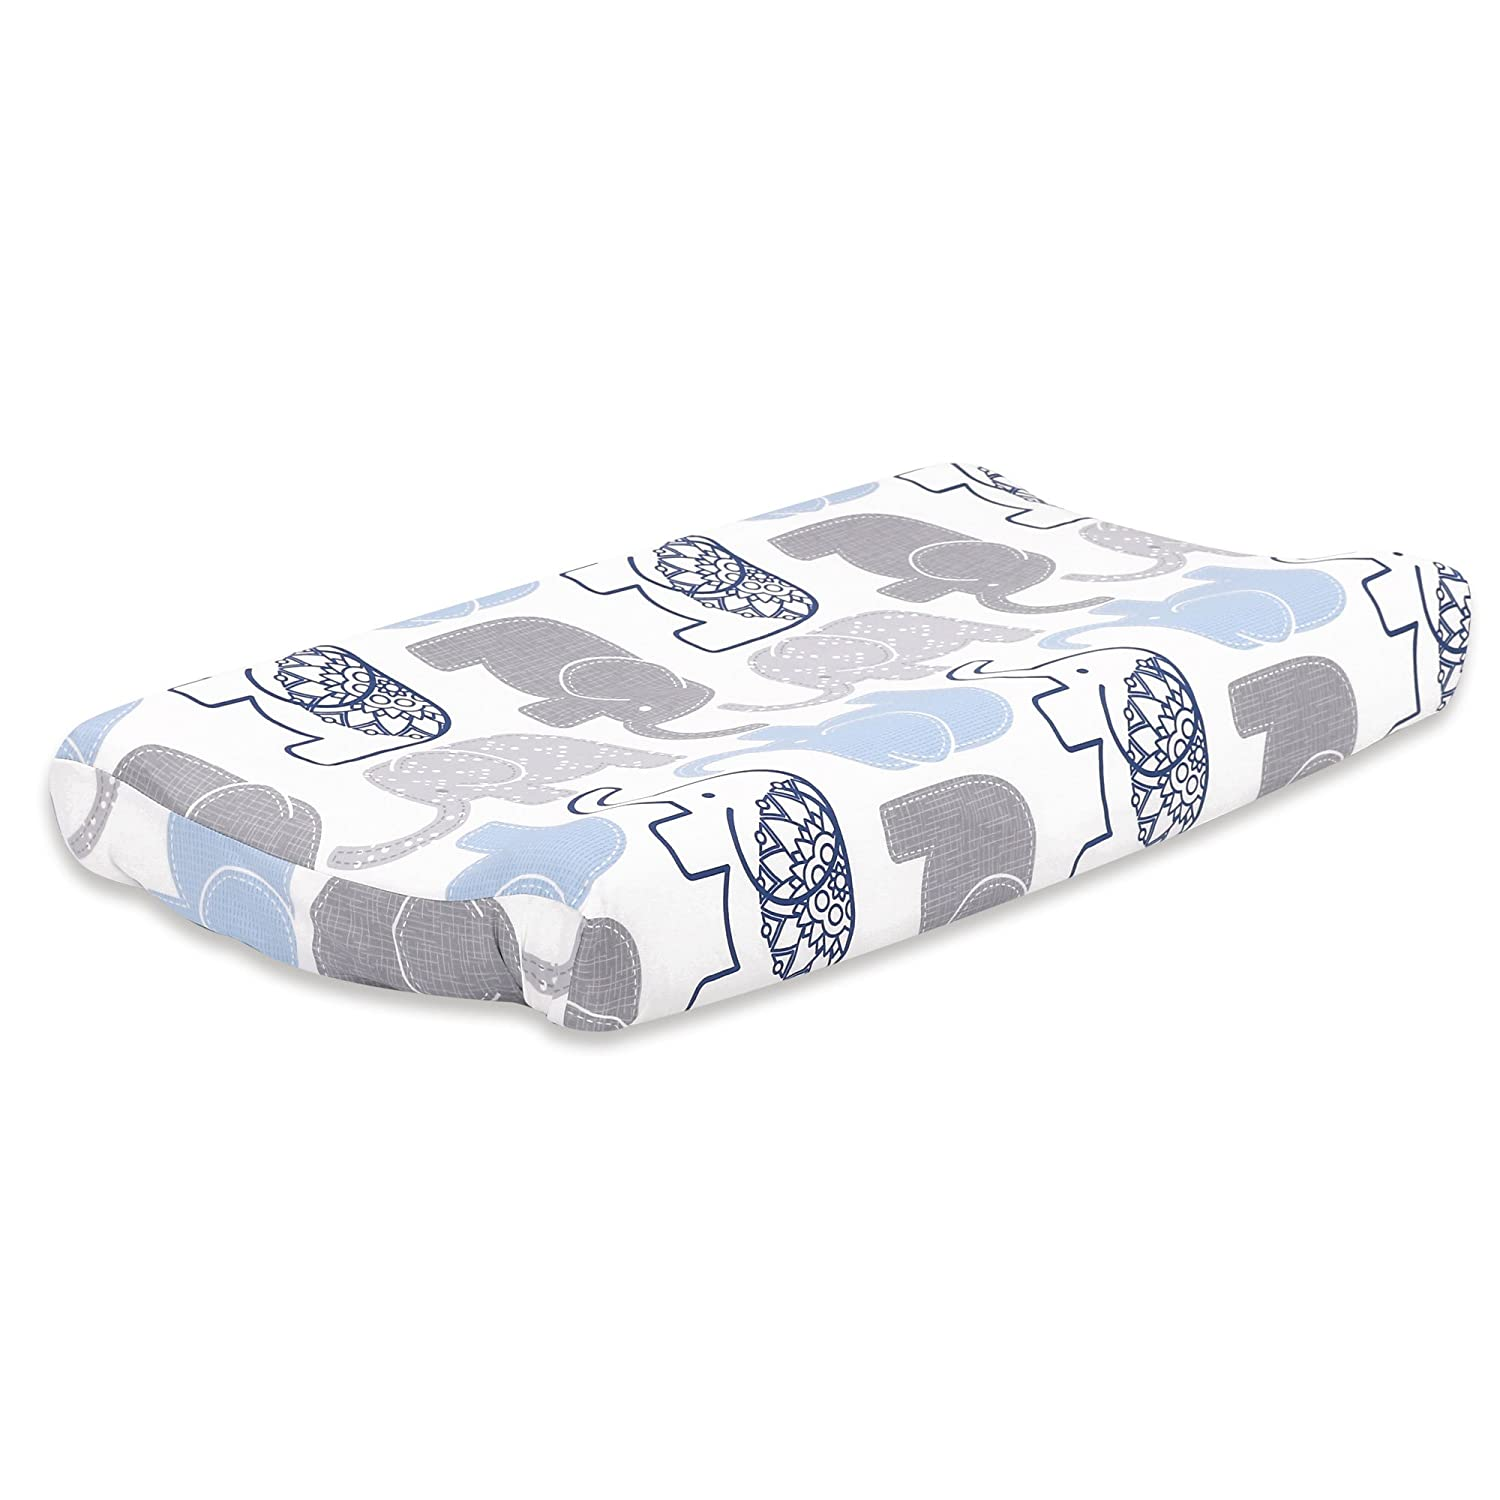 Little Peanut Grey and Blue Detroit Mall Elephant Pad Baby Changing Latest item by Cover